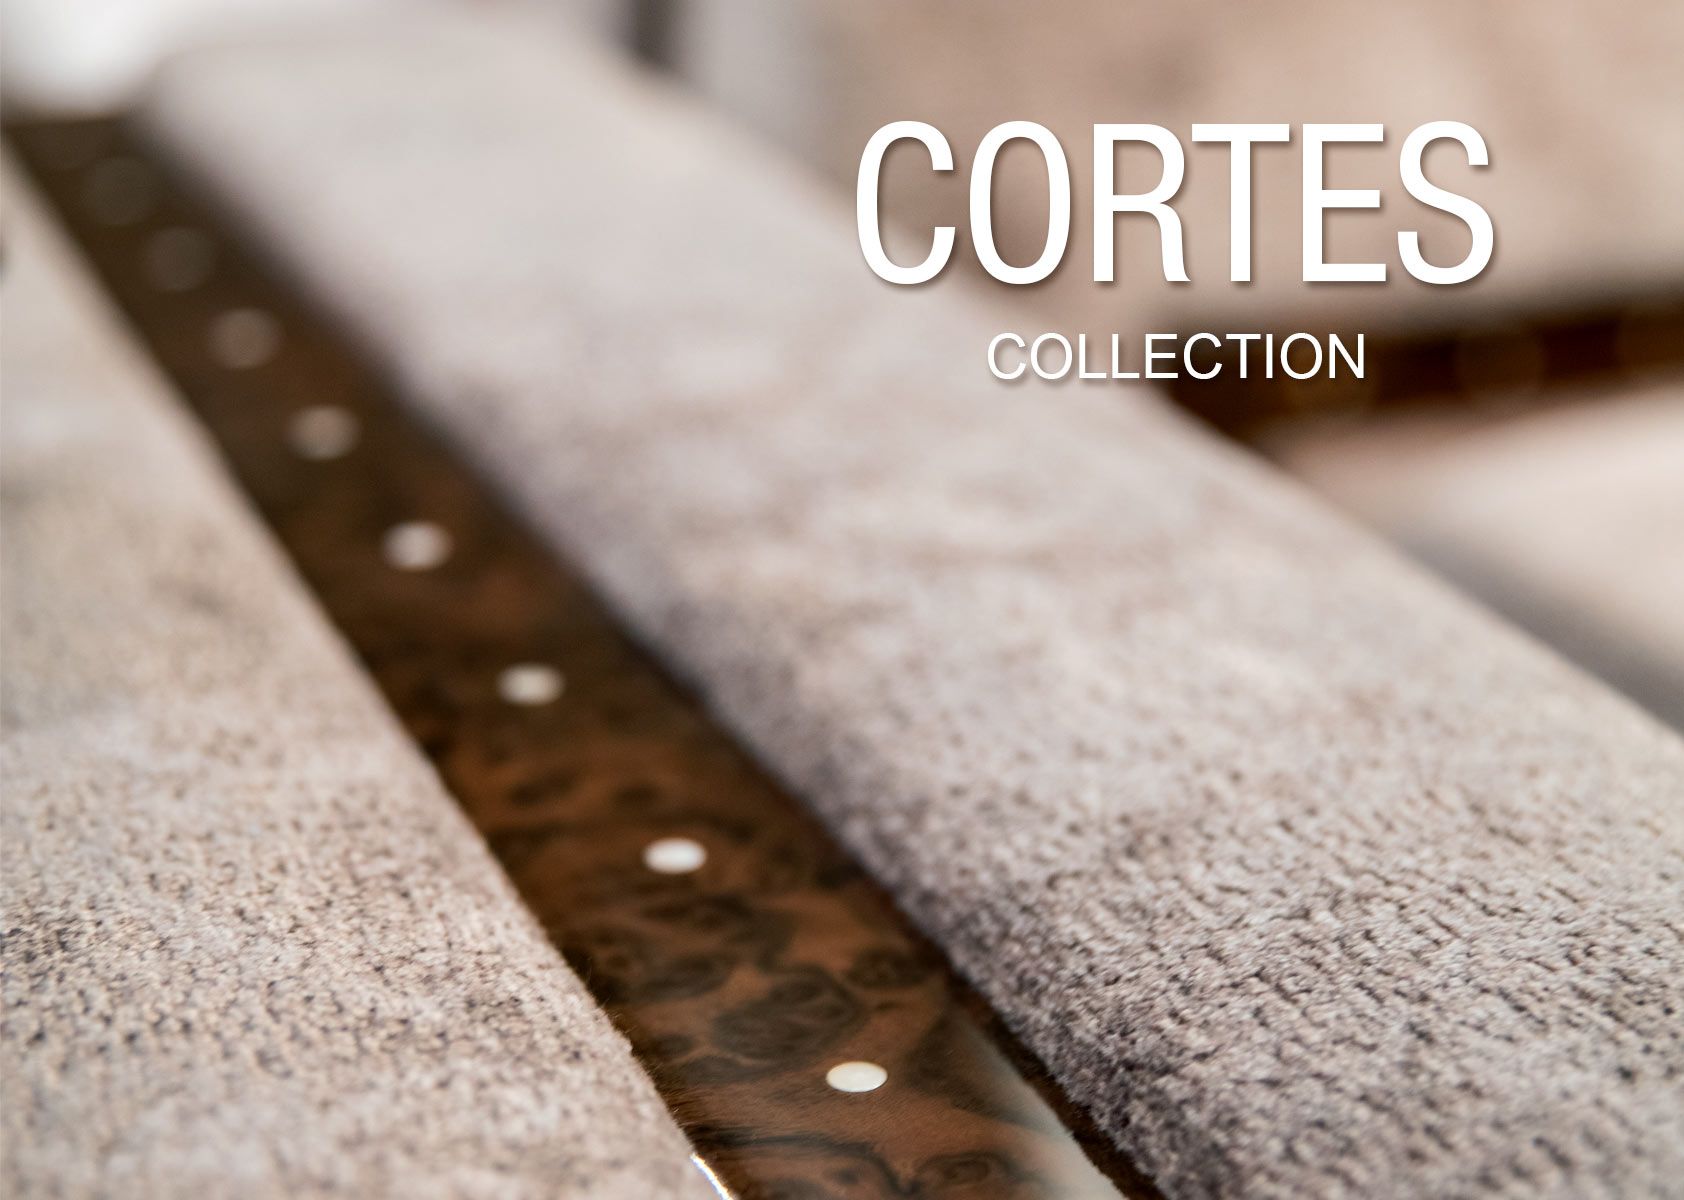 CORTES COLLECTION